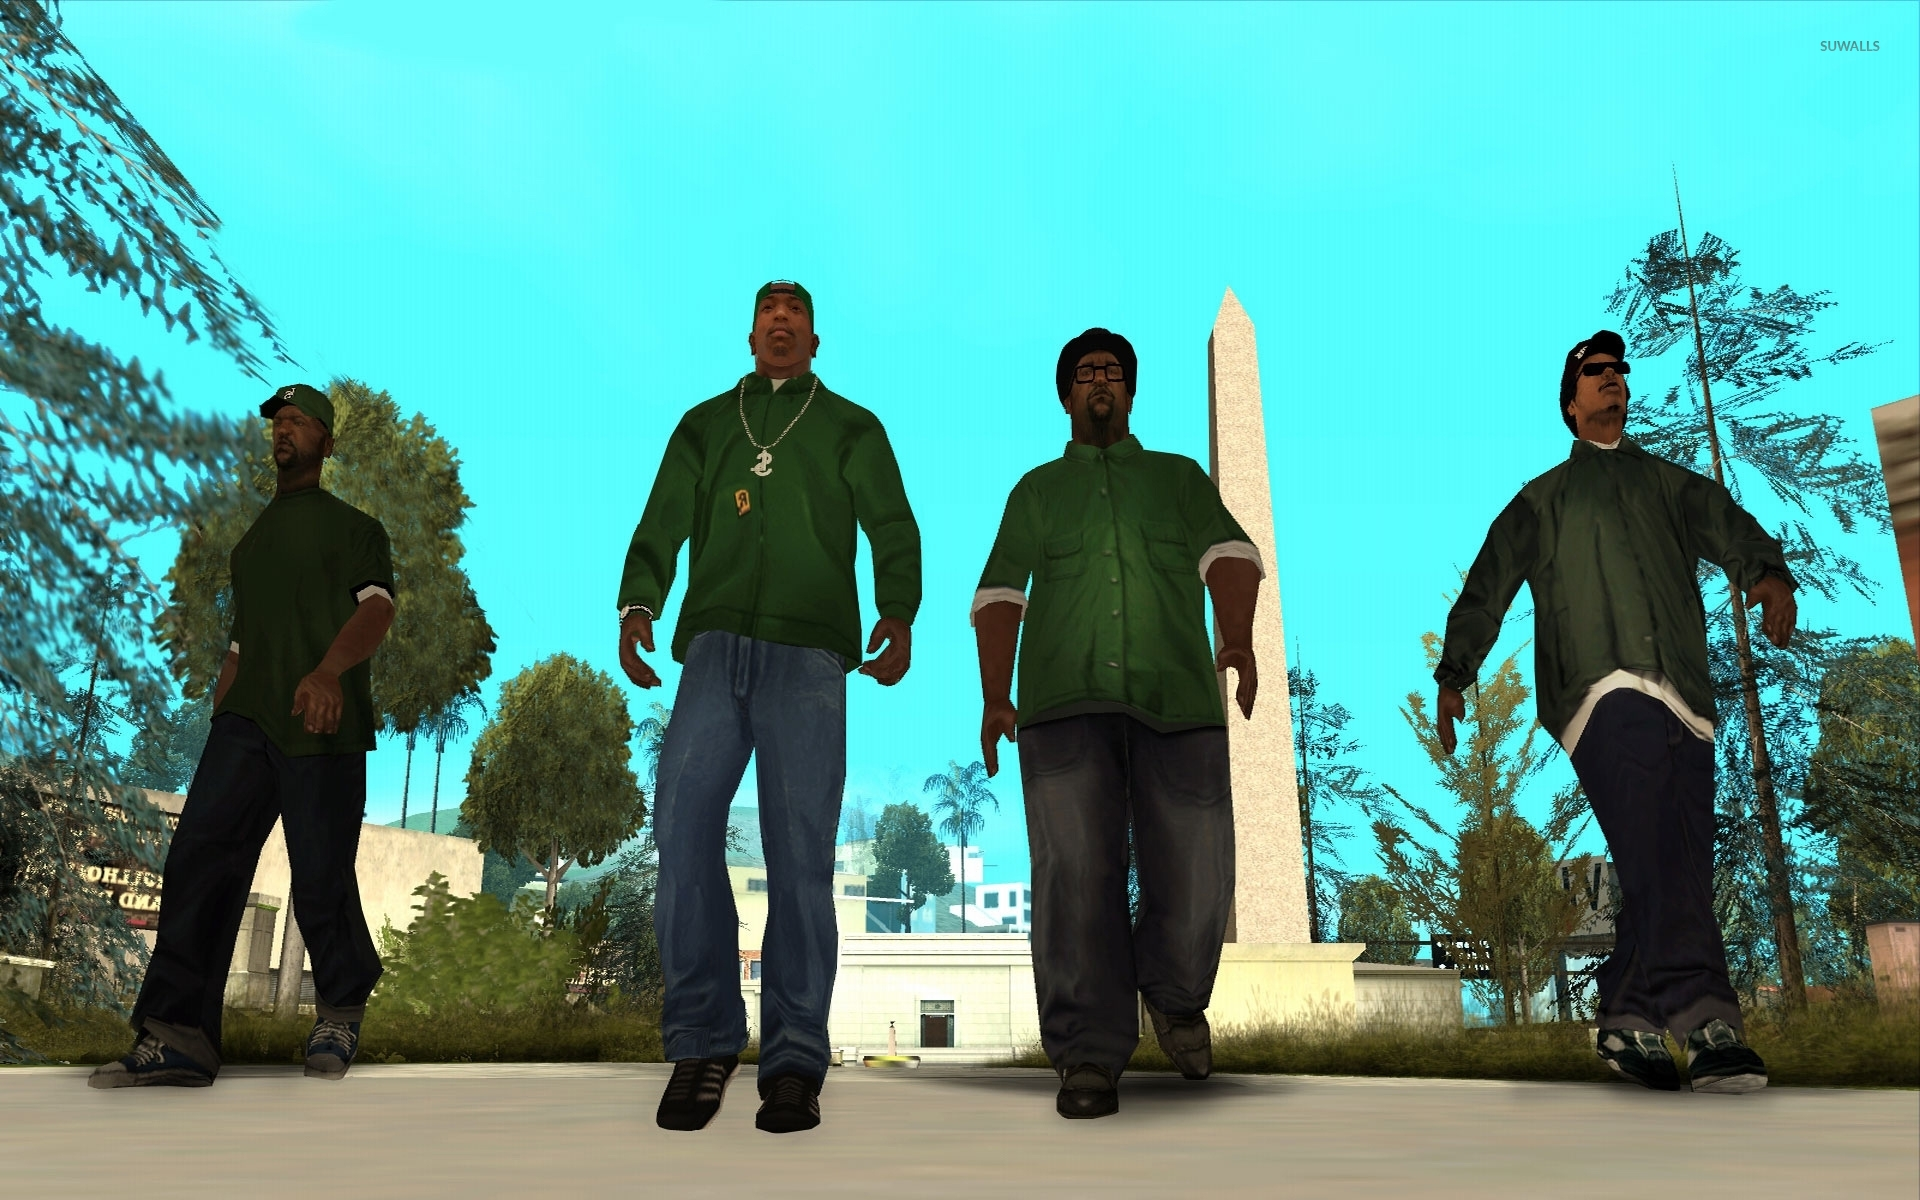 Gta San Andreas Background Posted By Christopher Cunningham